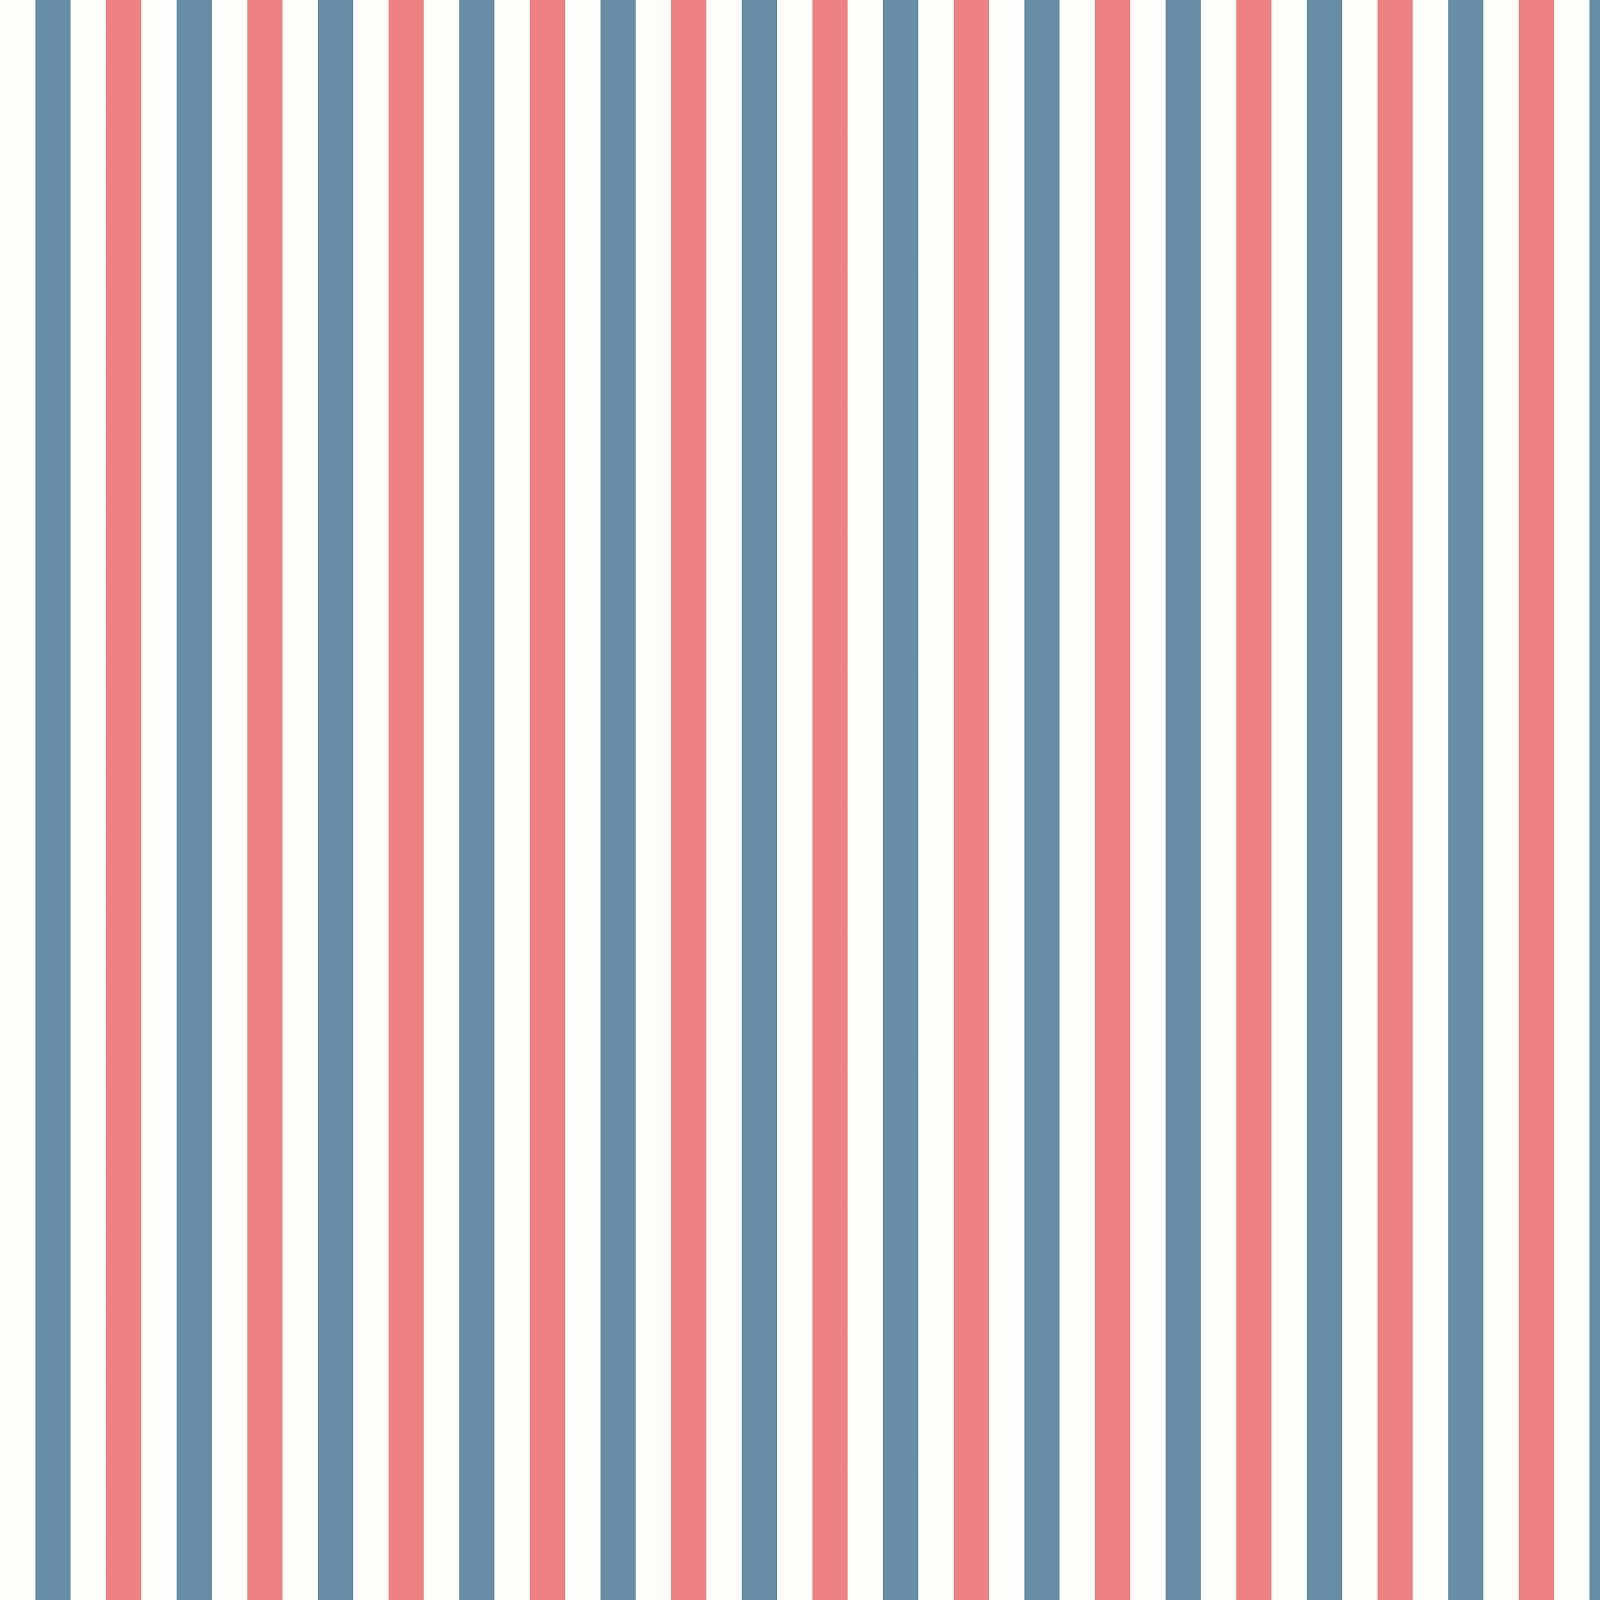 Bonjourvintage: Free Digital Scrapbook Paper - Red White And Blue - Free Printable Patriotic Scrapbook Paper